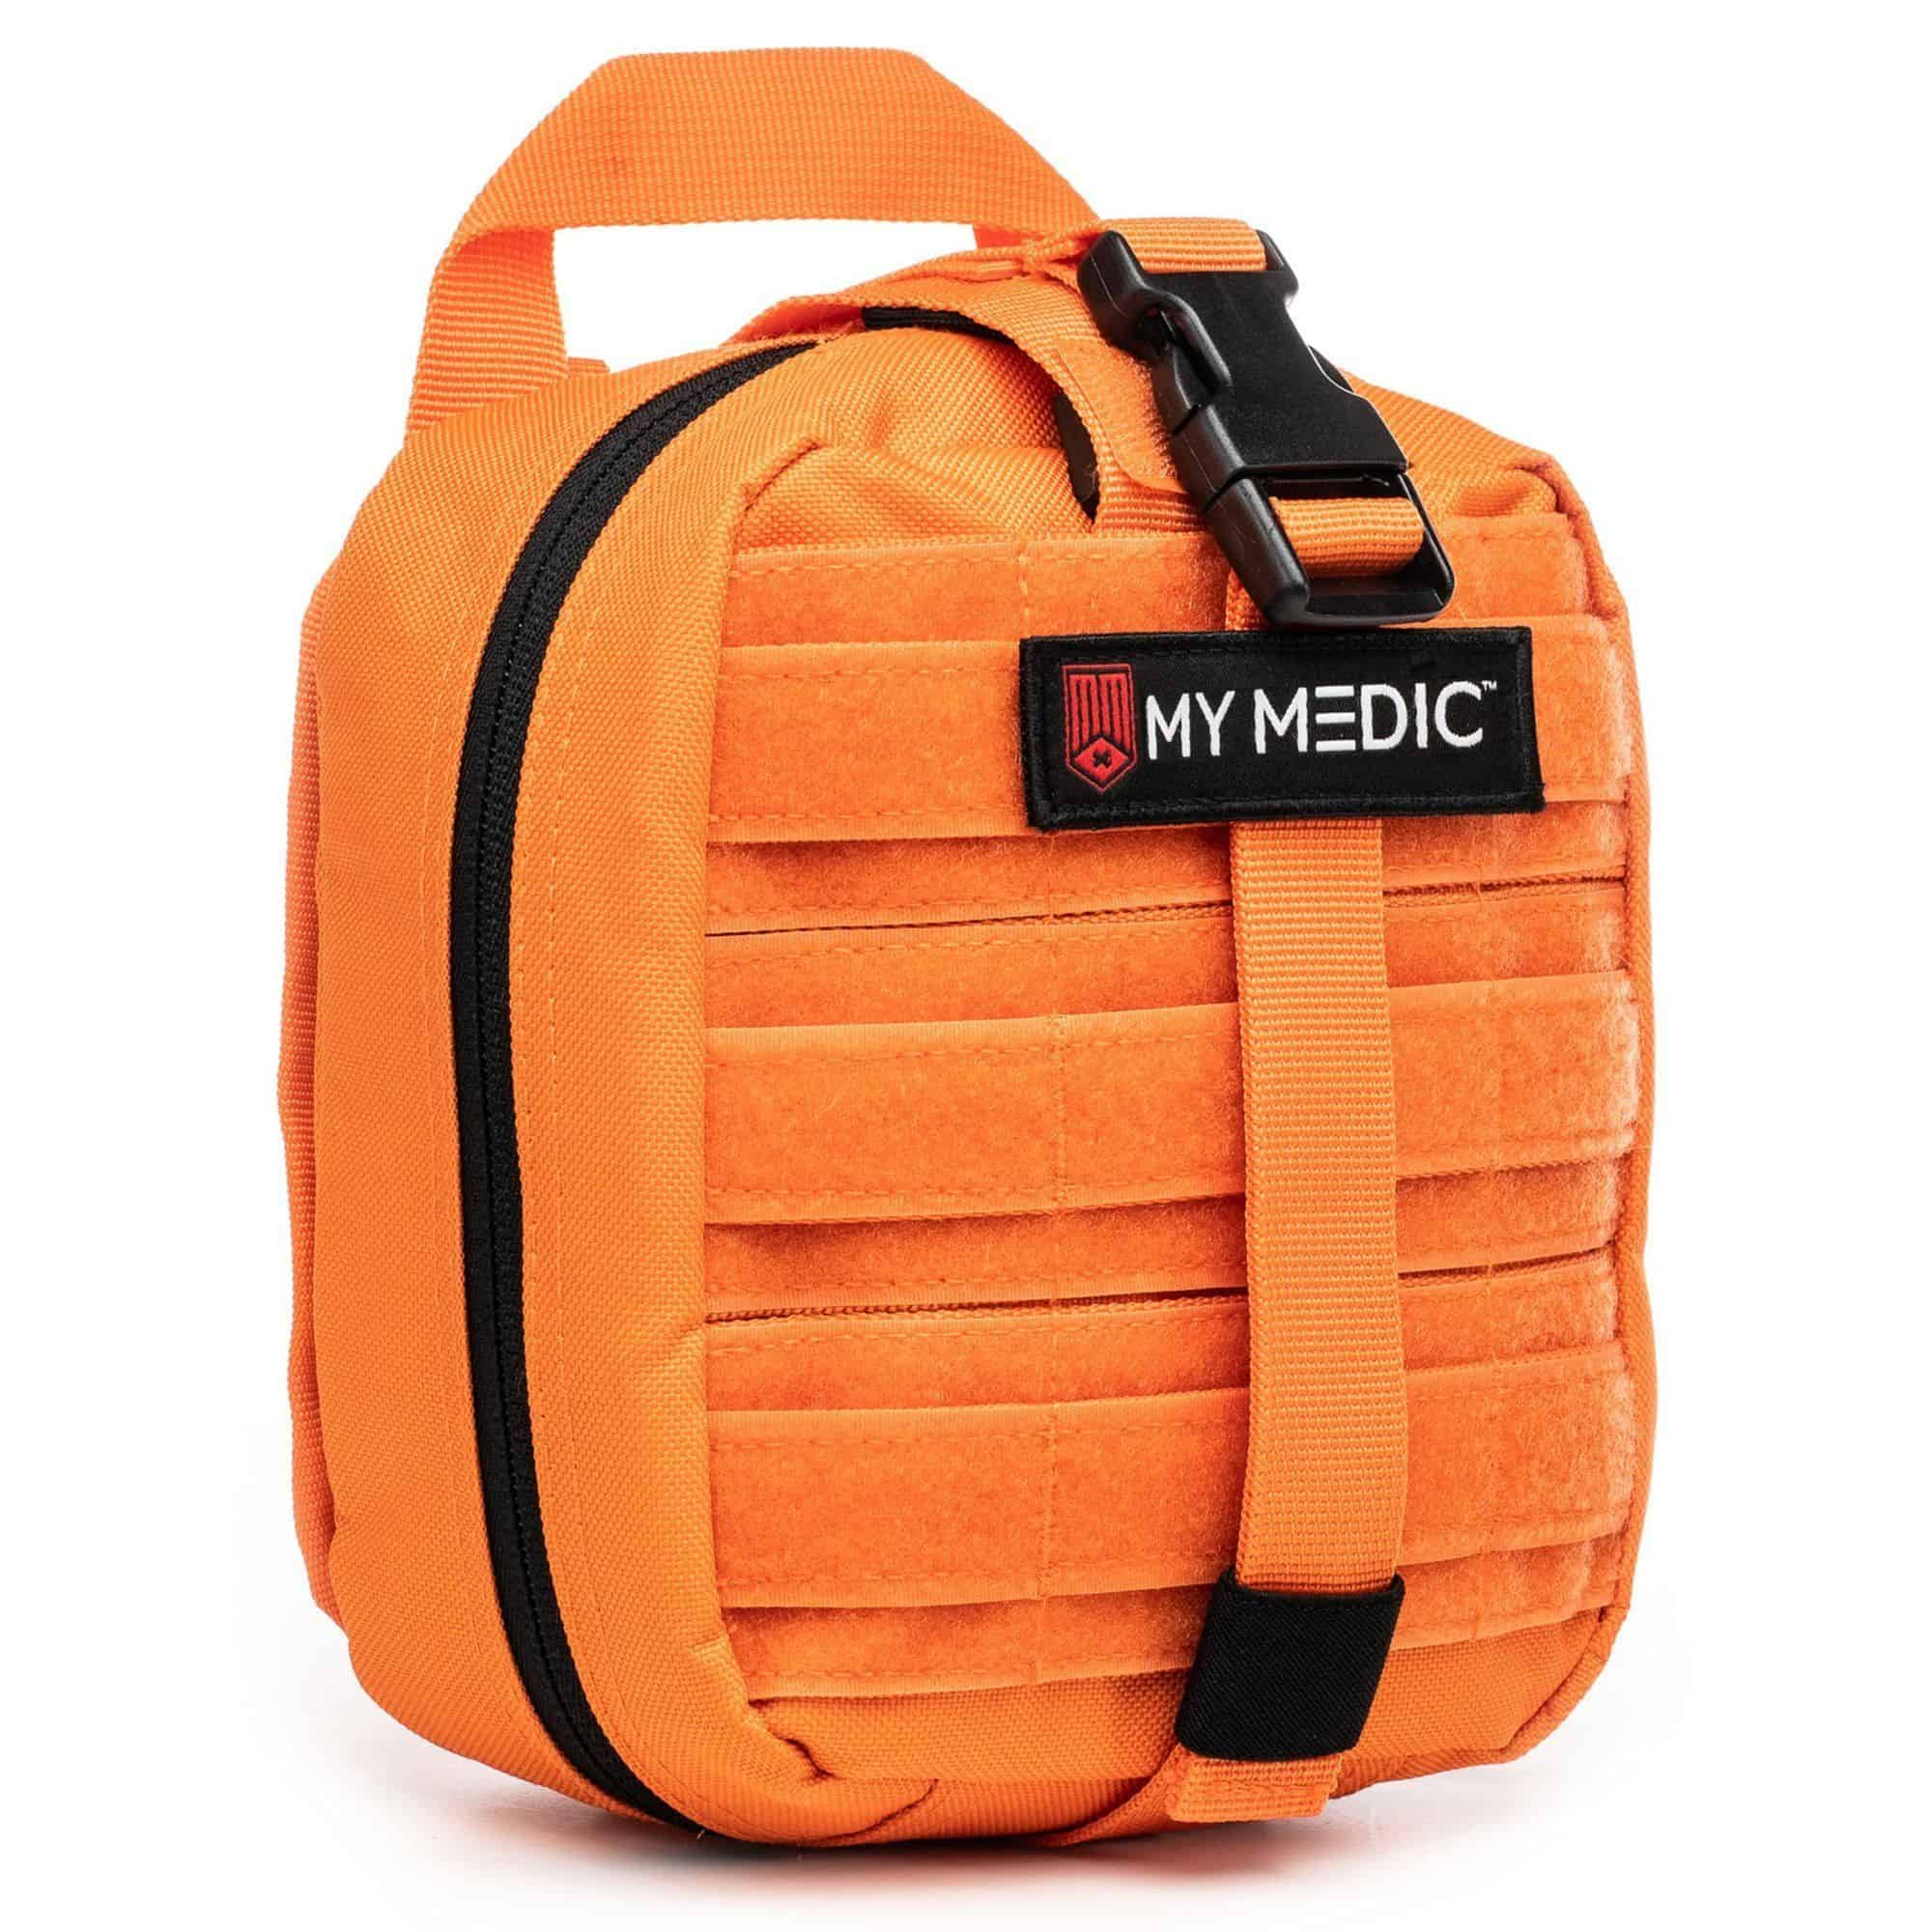 MyMedic FAK - First Aid Kit - Orange